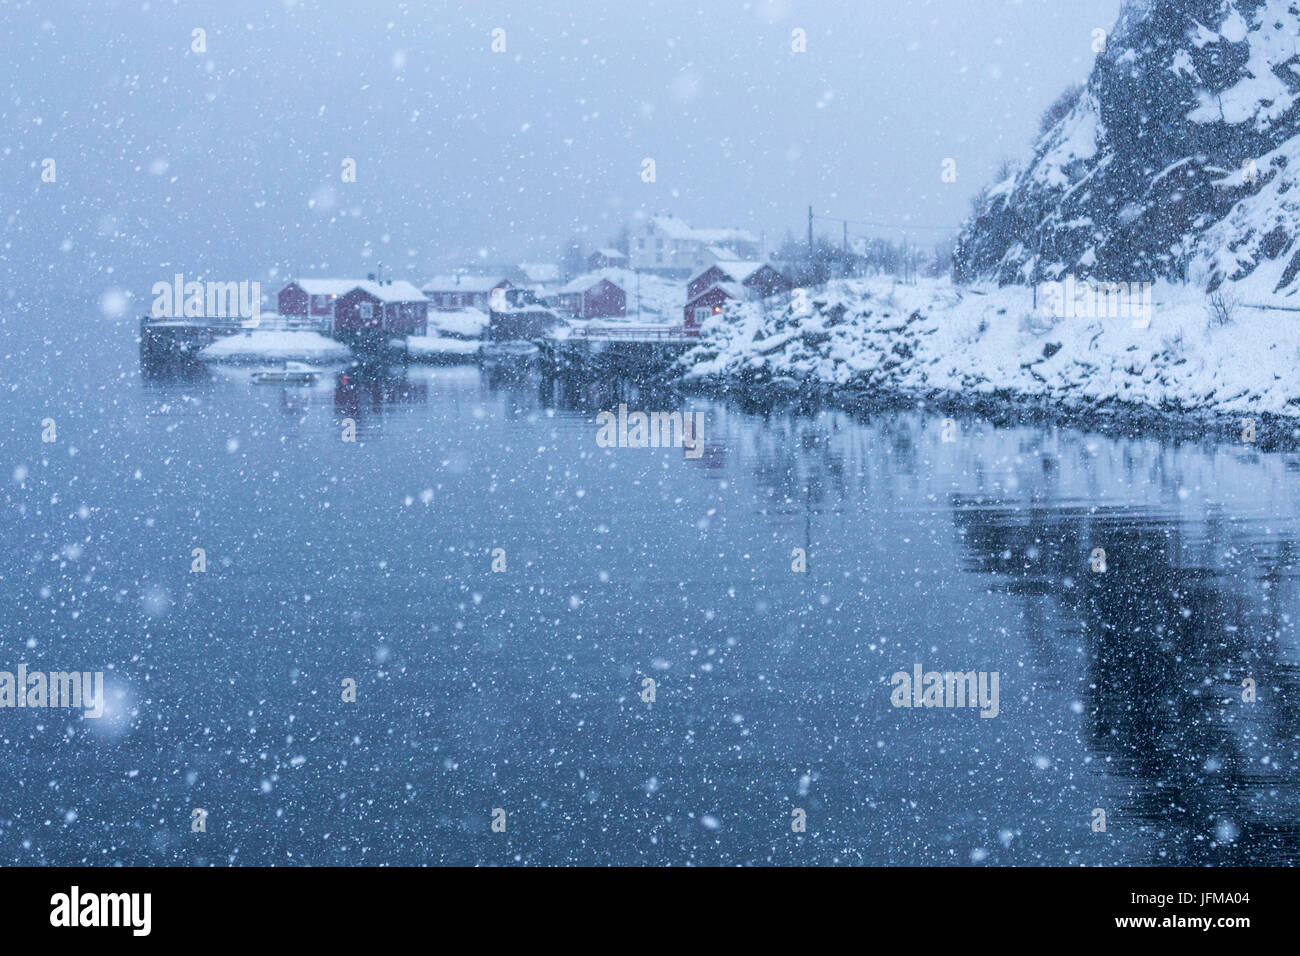 Snowfall in a small bay of Nusfjord fishing village, Lofoten Islands, Norway - Stock Image